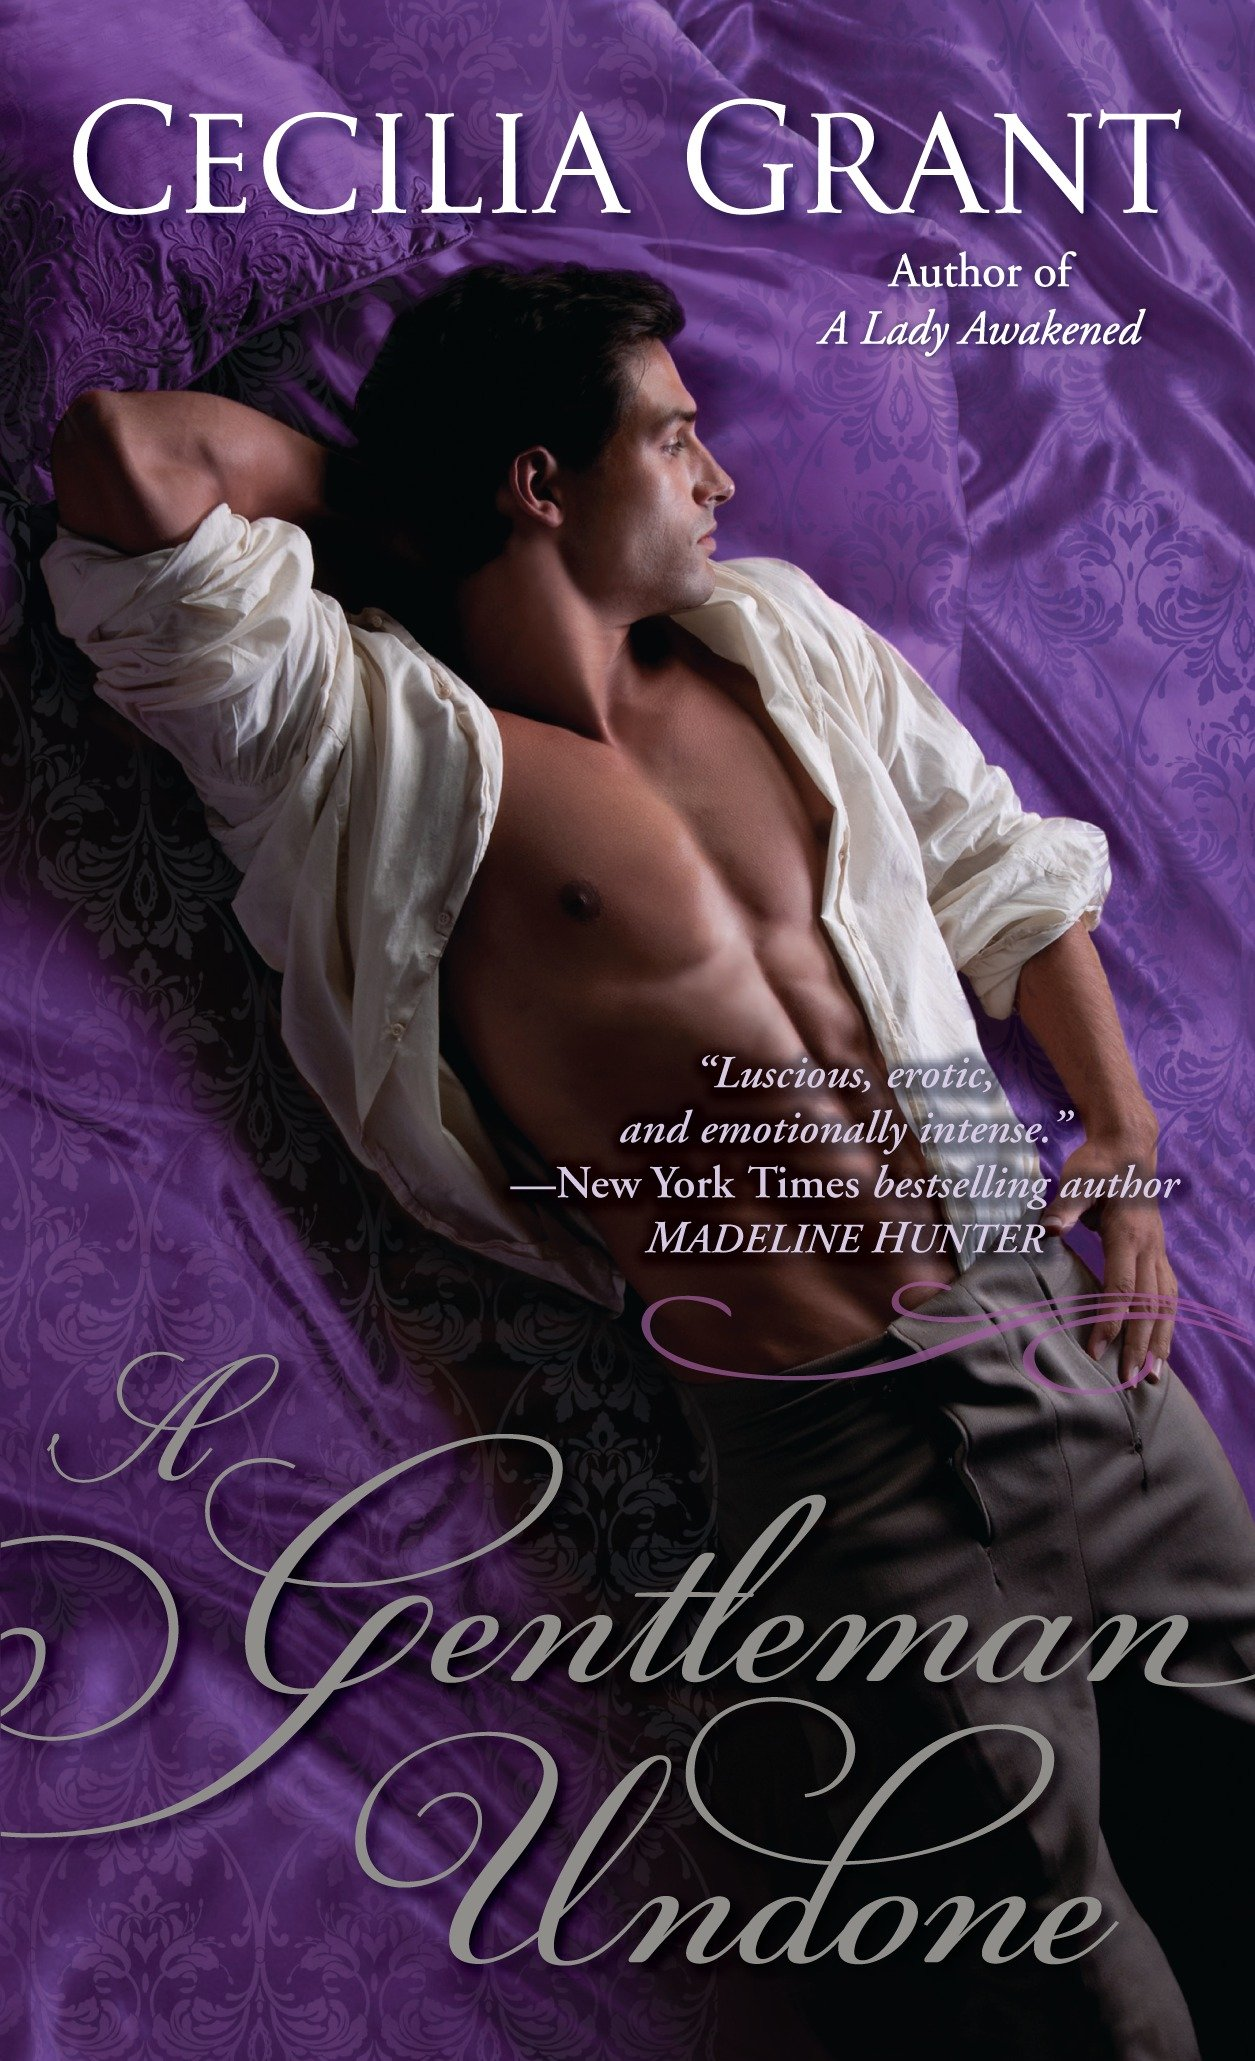 A gentleman undone cover image